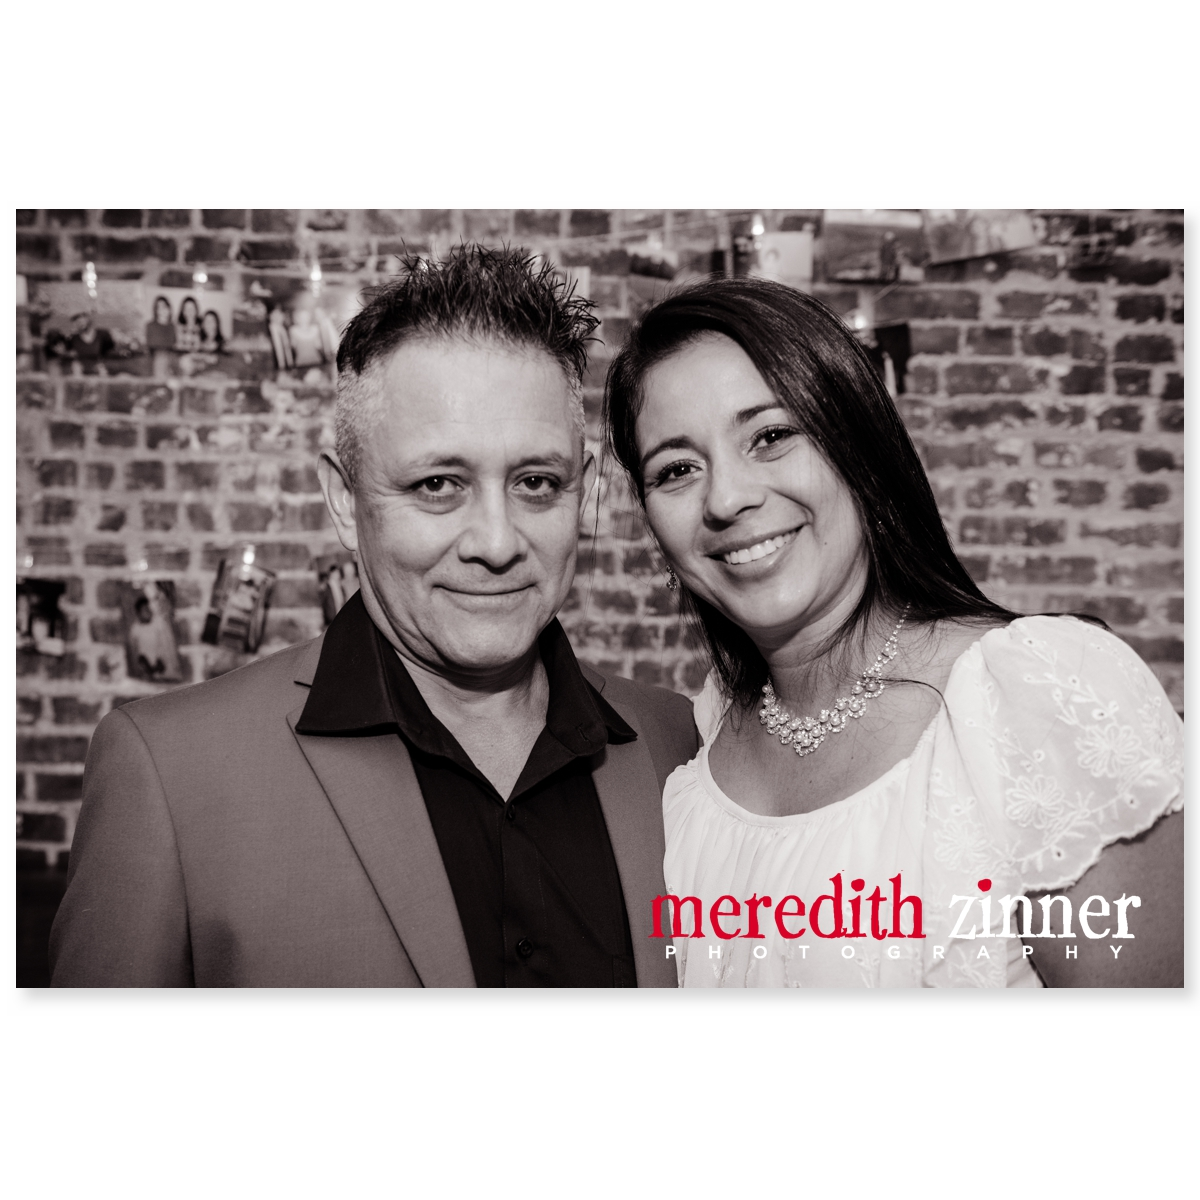 Meredith_Zinner_Photography_StilesCelebration_0130